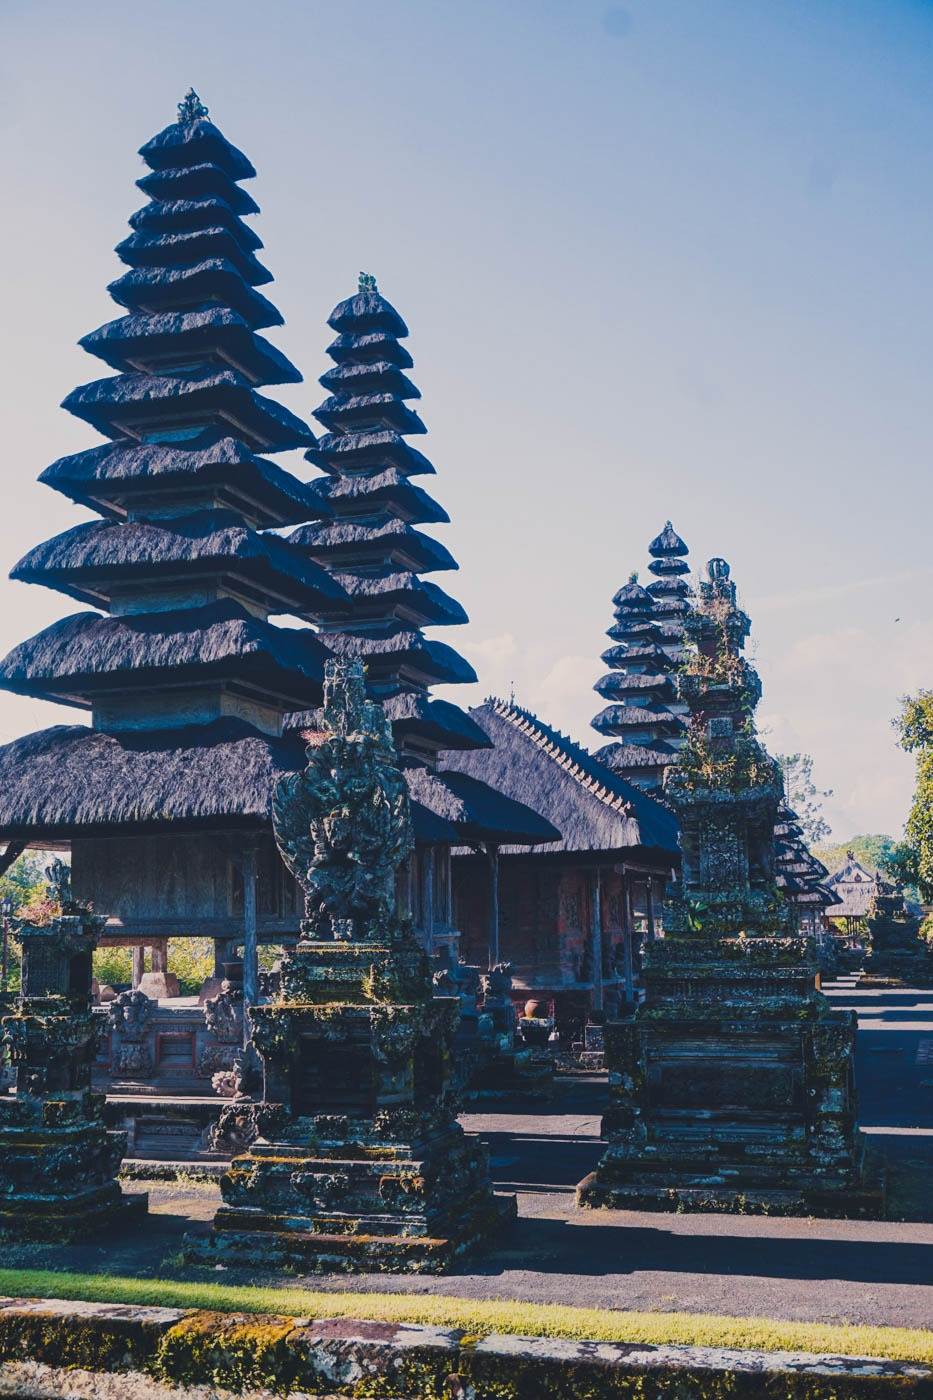 Taman Ayun Temple - Bali Itinerary #traveldestinations #bali #beautifulplaces